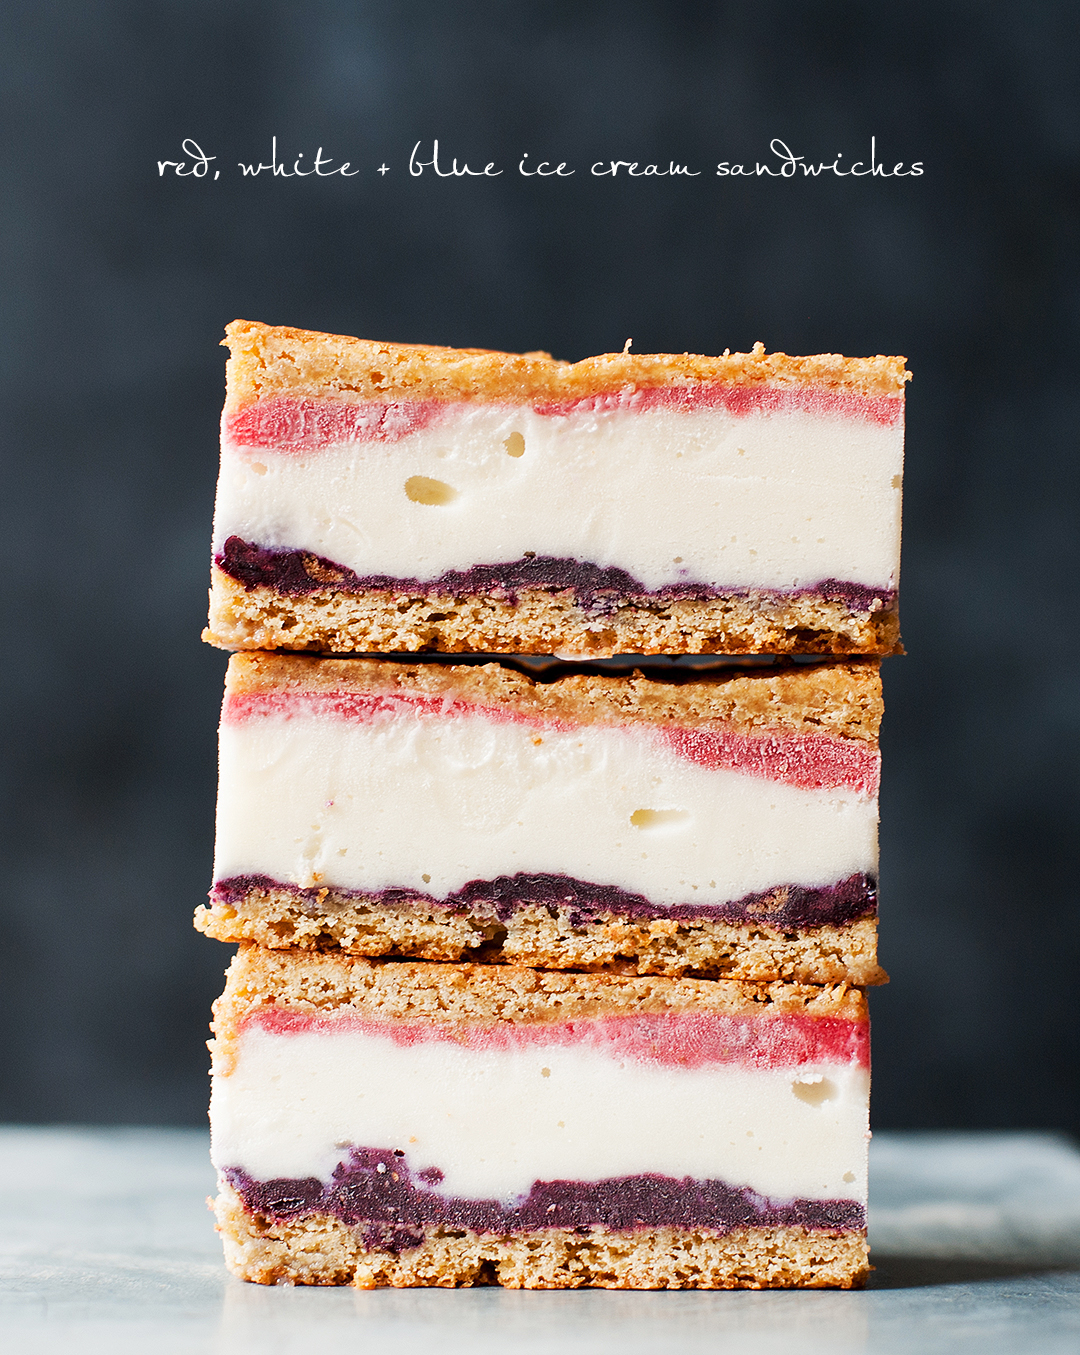 strawberry_blueberry_ice_cream_sandwiches_for_the_4th_1